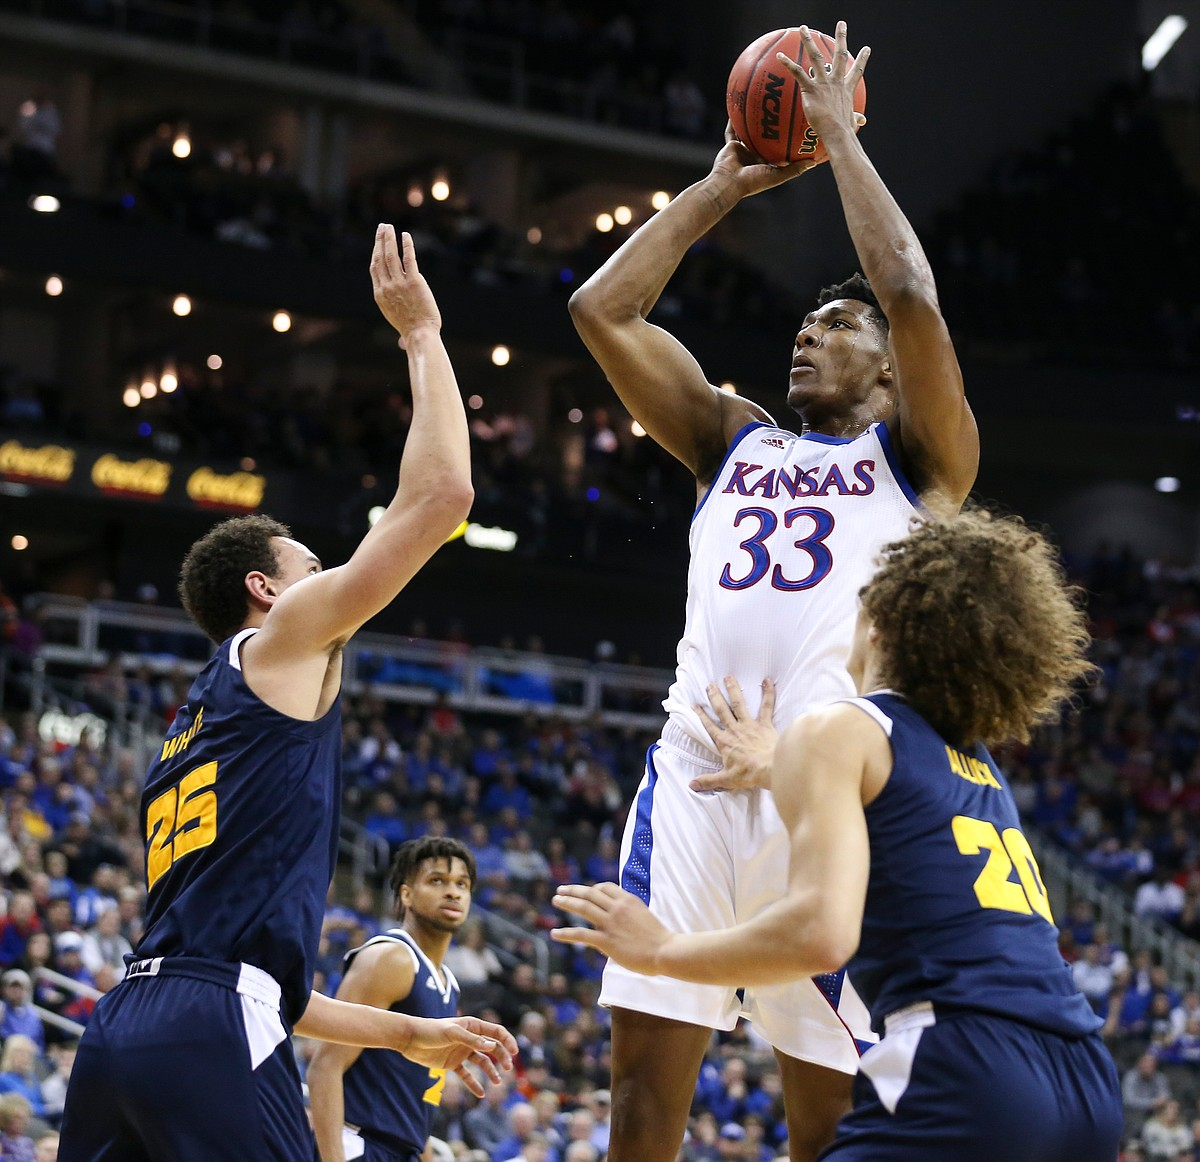 David McCormack's monster day earns top spot in KU's 98-57 rout of Kansas City | The KUsports.com Ratings